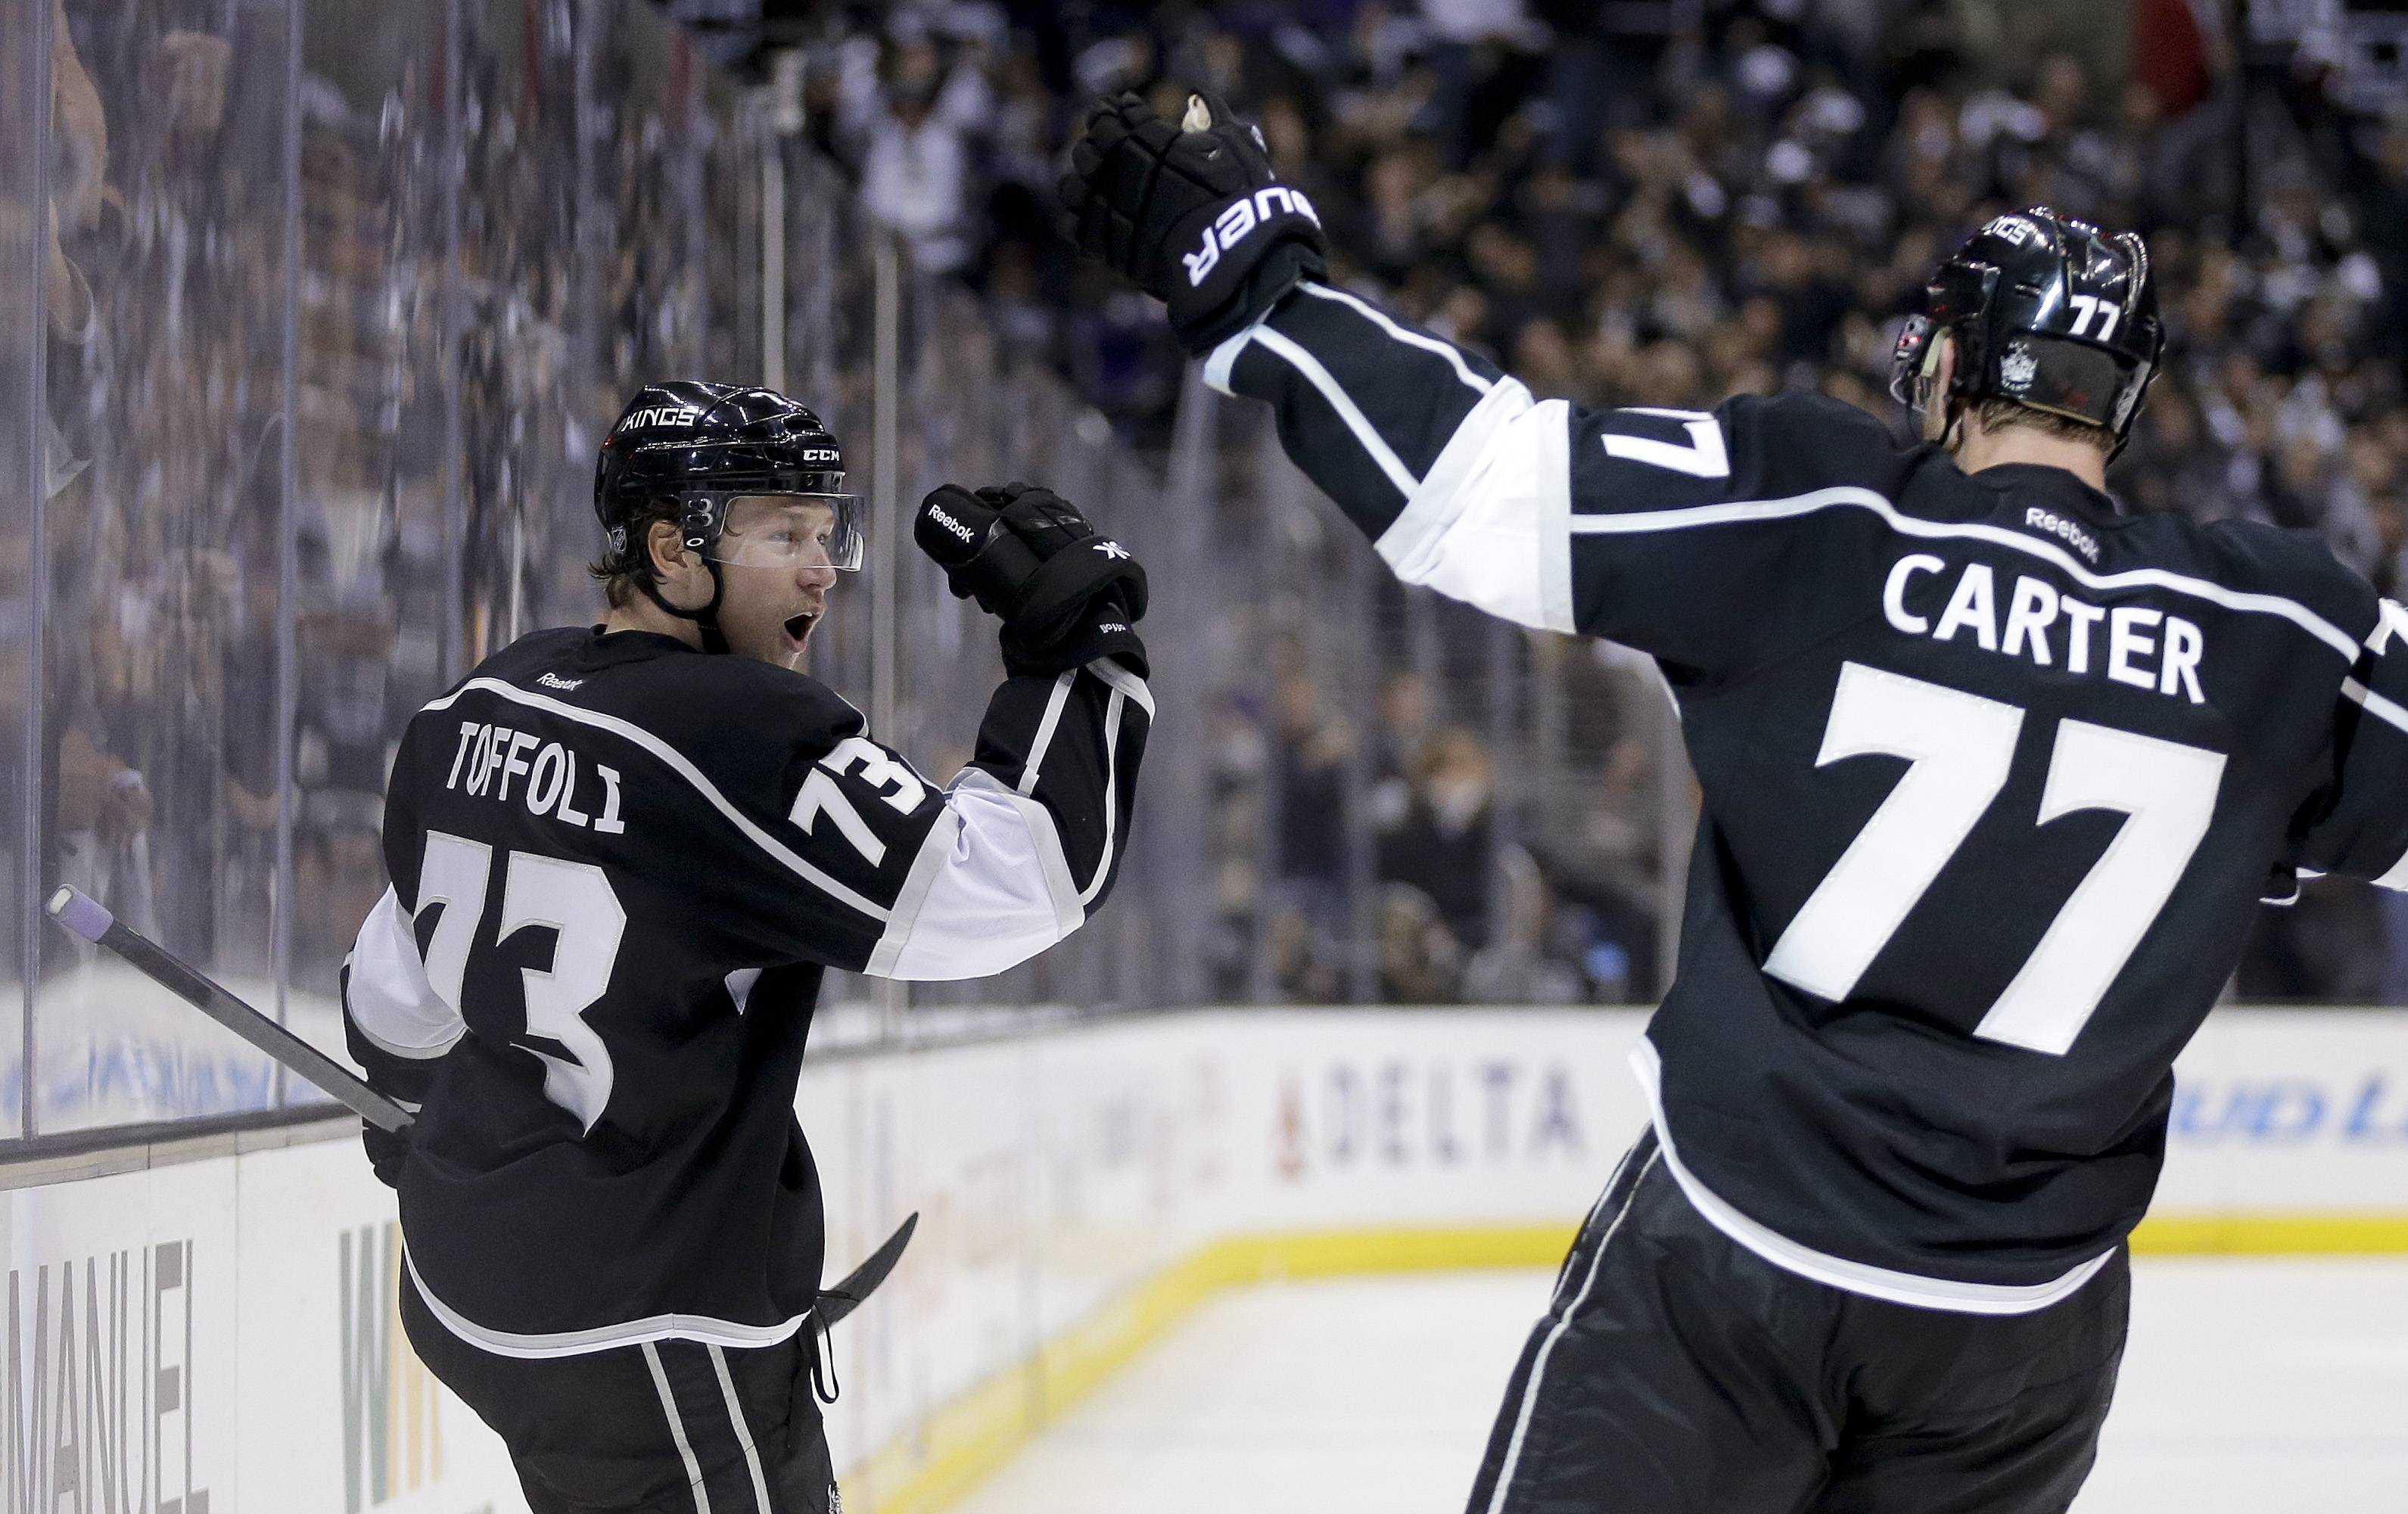 Los Angeles Kings center Tyler Toffoli, left, celebrates his goal with teammate Jeff Carter against the Chicago Blackhawks during the second period of Game 3 of the Western Conference finals of the NHL hockey Stanley Cup playoffs in Los Angeles, Saturday, May 24, 2014.